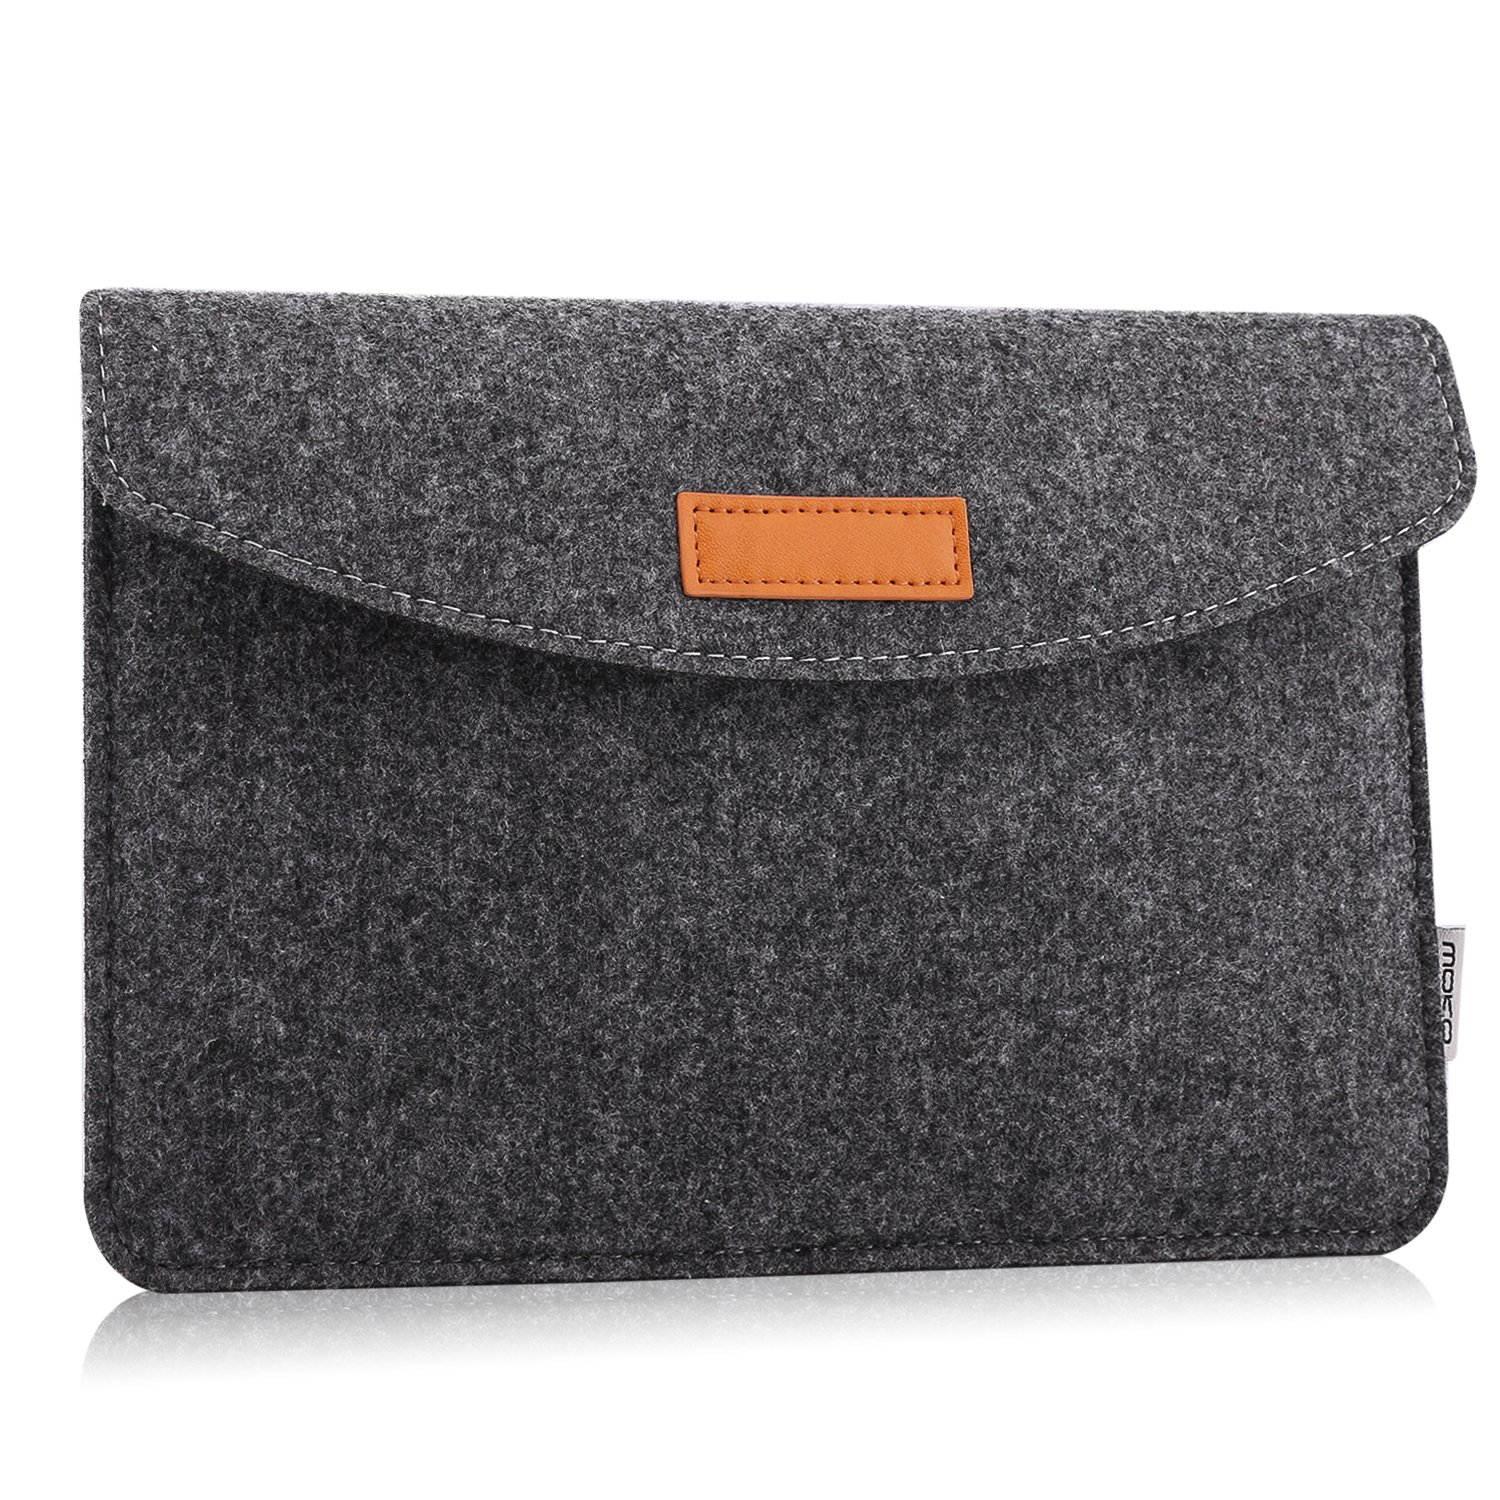 MoKo 7-8 Inch Sleeve Bag, Portable Carrying Protective Felt Tablet Case Cover, for iPad Mini 1/2 /3/4, Lenovo Tab 4 8.0, Samsung Galaxy Tab S2 8.0, Tab A 8.0, Neutab 7', ZenPad Z8S 7.9 - Dark Gray Neutab 7 Moko Cases 7823013338401107